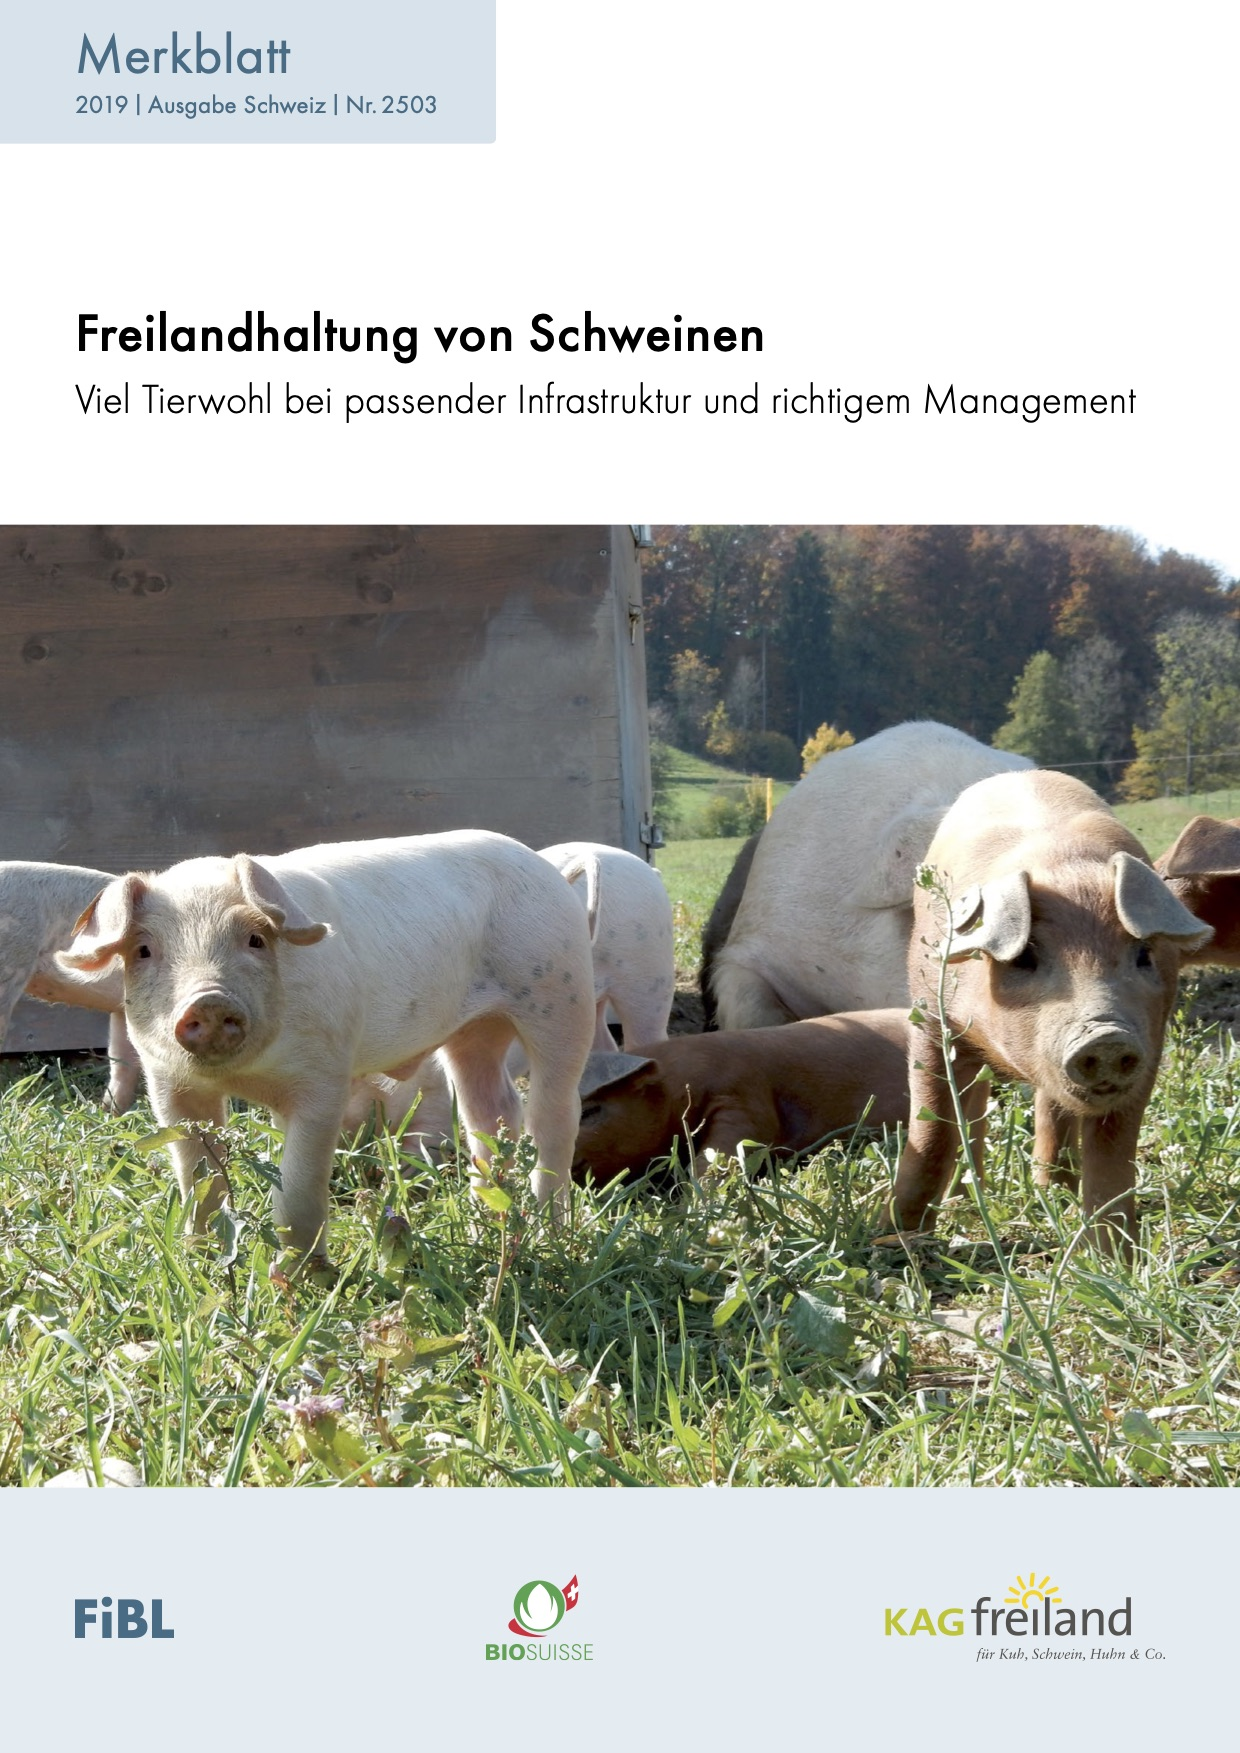 Free-range pigs: high animal welfare with appropriate infrastructure and management